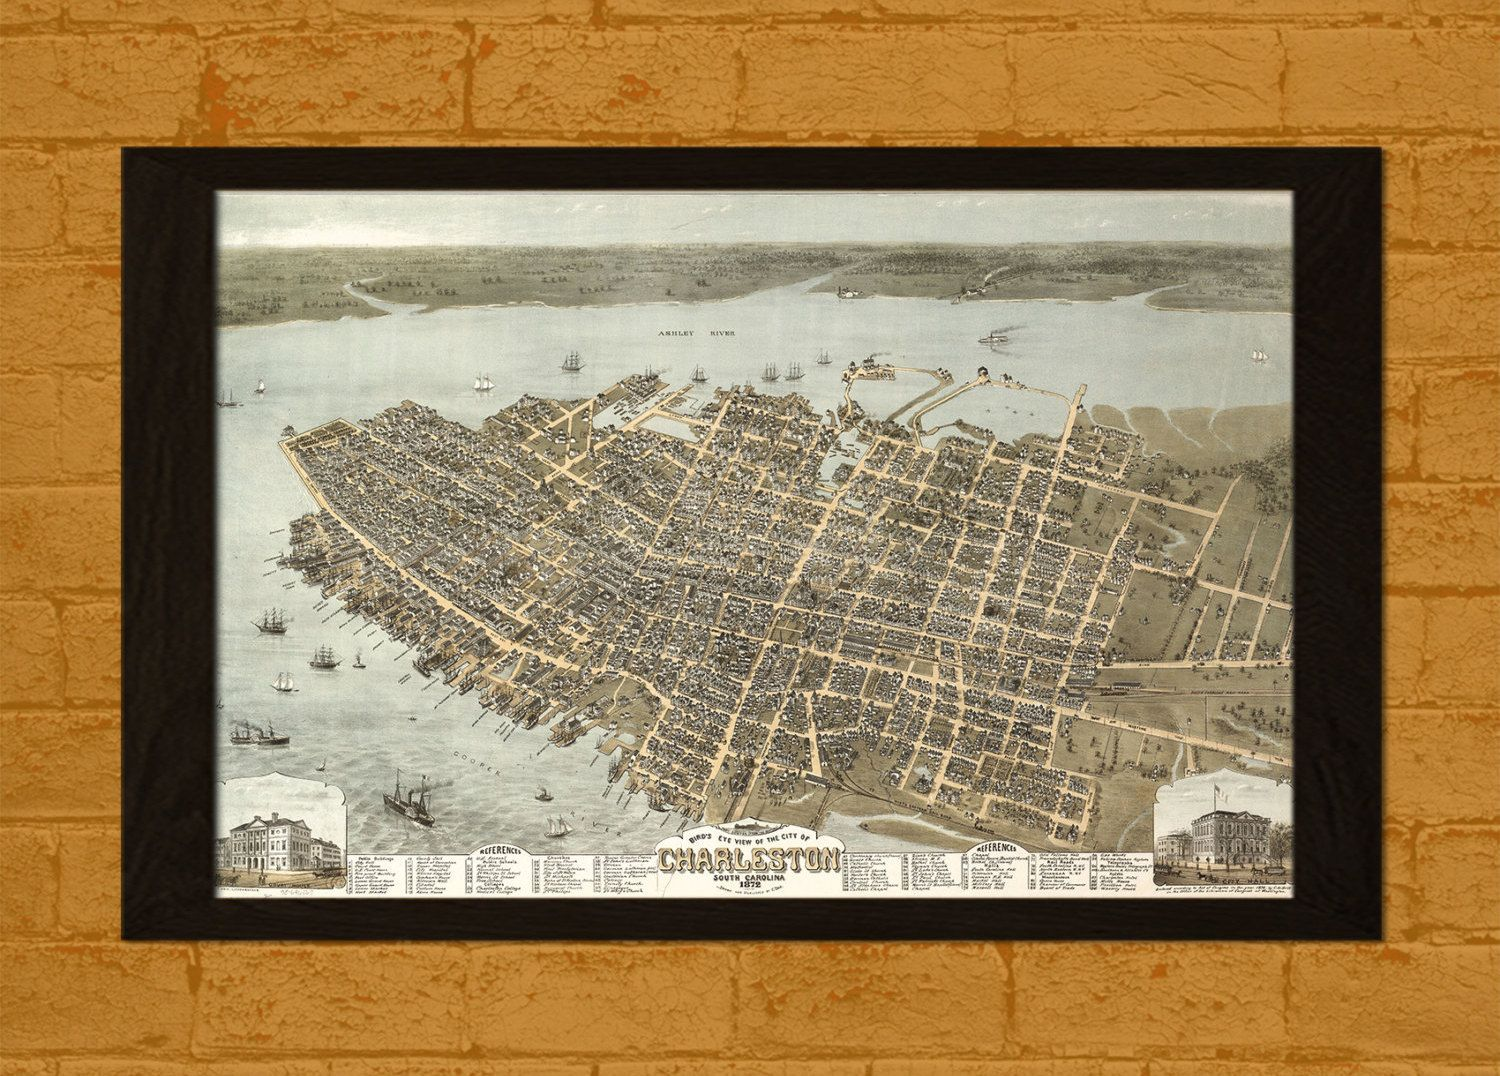 BUY GET FREE Old Charleston Map Ancient Map Of Charleston - Buy ancient maps